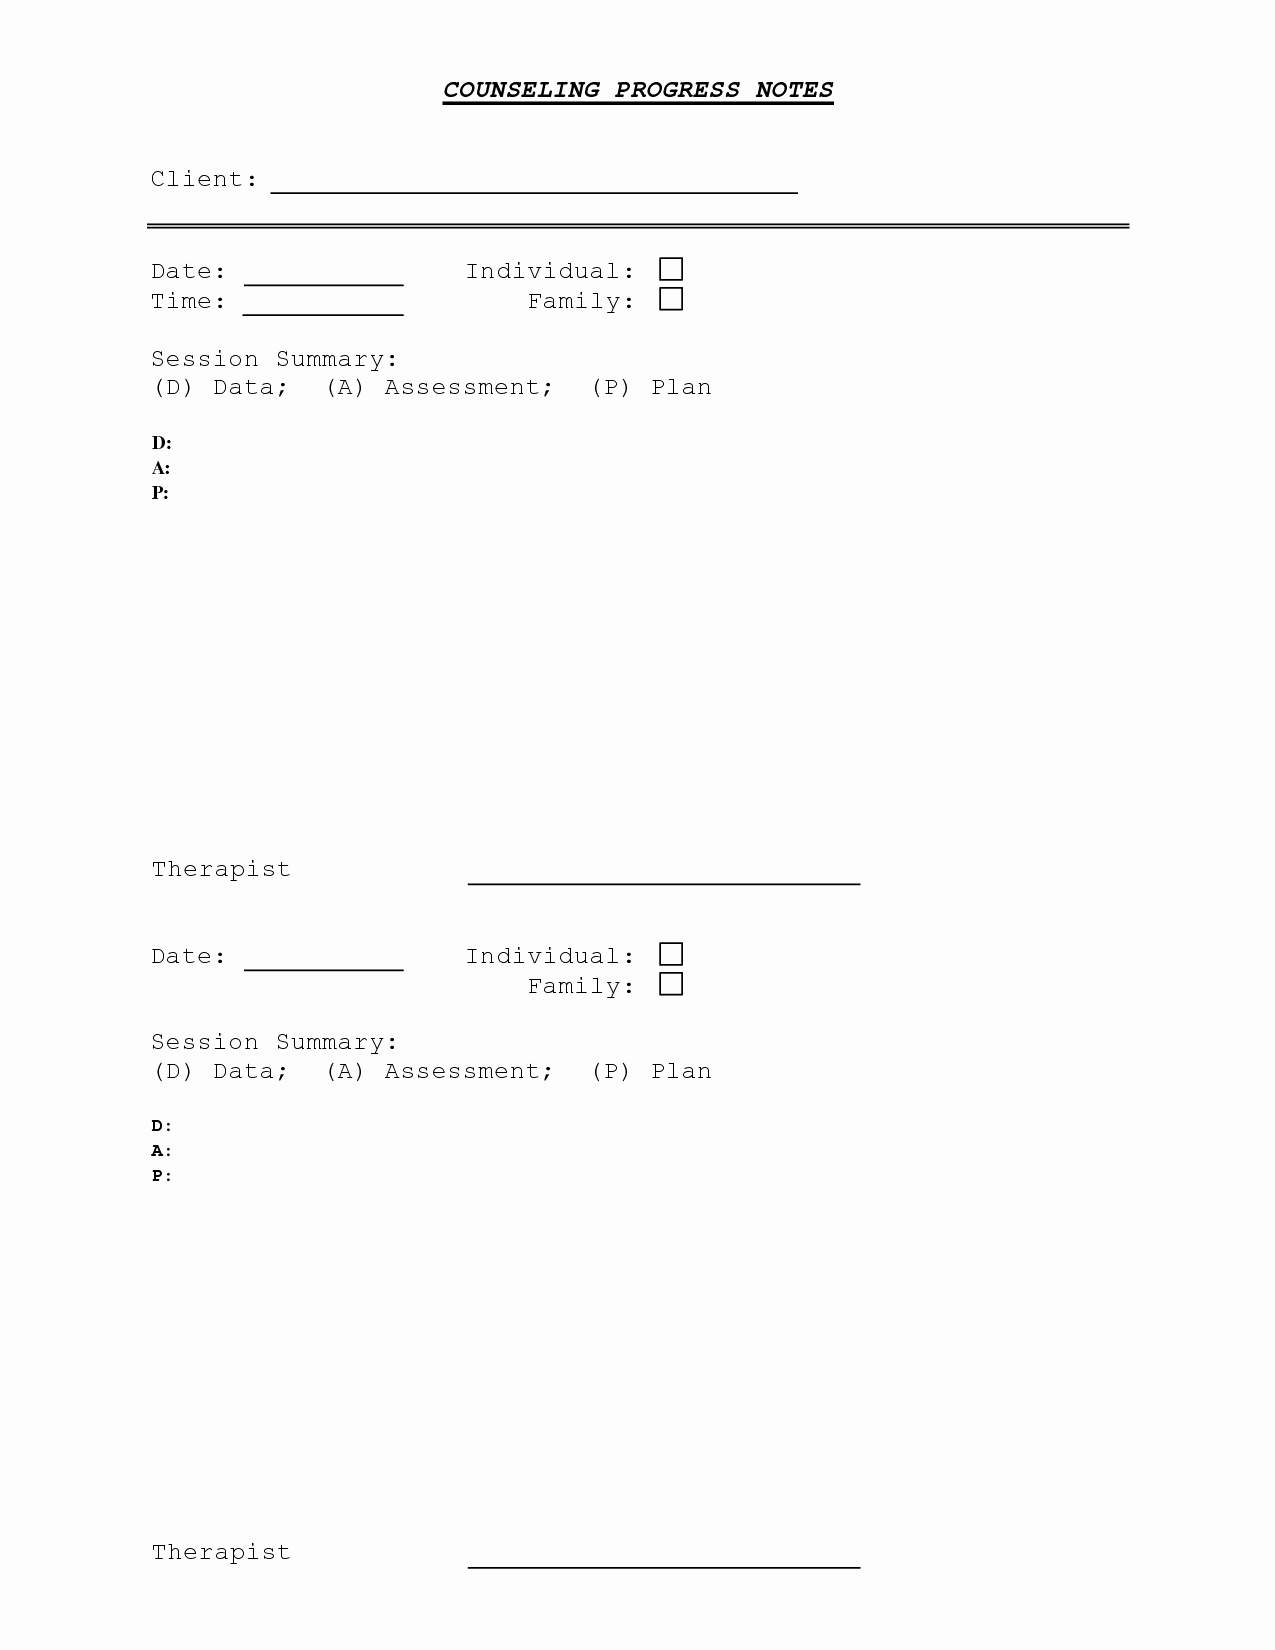 Counseling Session Notes Template Awesome Counseling Progress Note Template